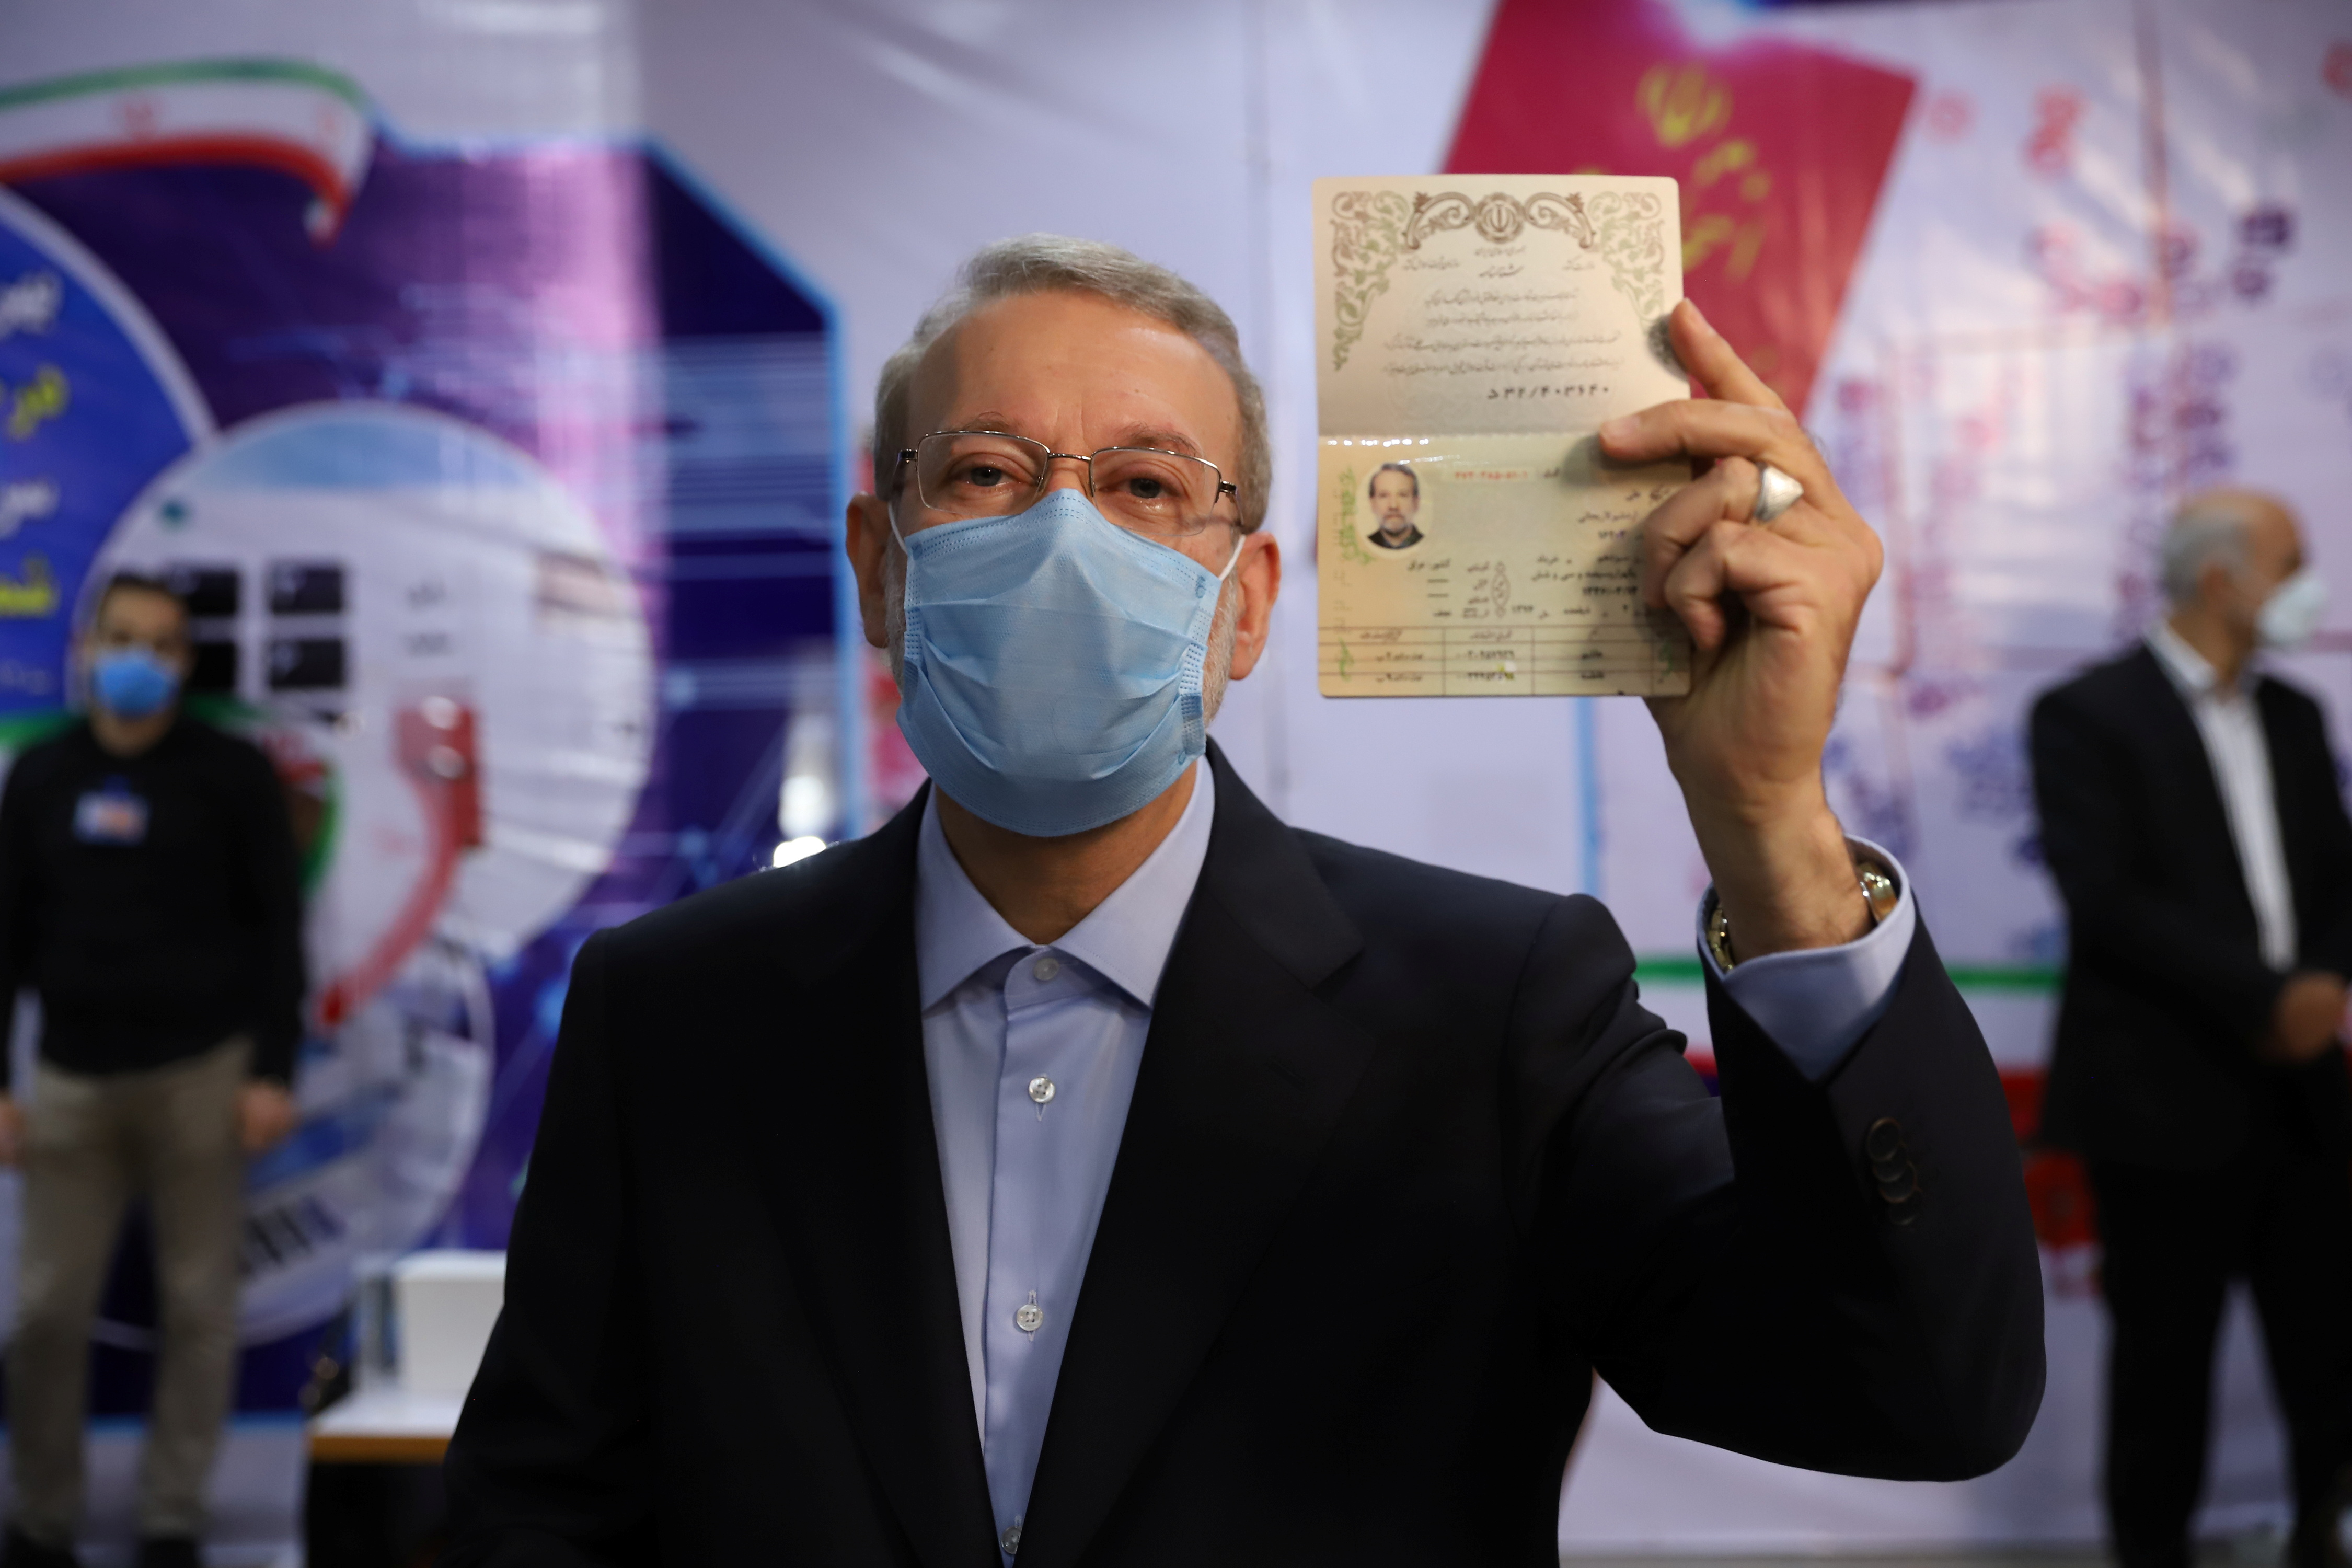 Ali Larijani, former chairman of the parliament of Iran, shows his identification document as he registers as a candidate for the presidential election at the Interior Ministry, in Tehran, Iran May 15, 2021. Majid Asgaripour/ WANA (West Asia News Agency) via REUTERS